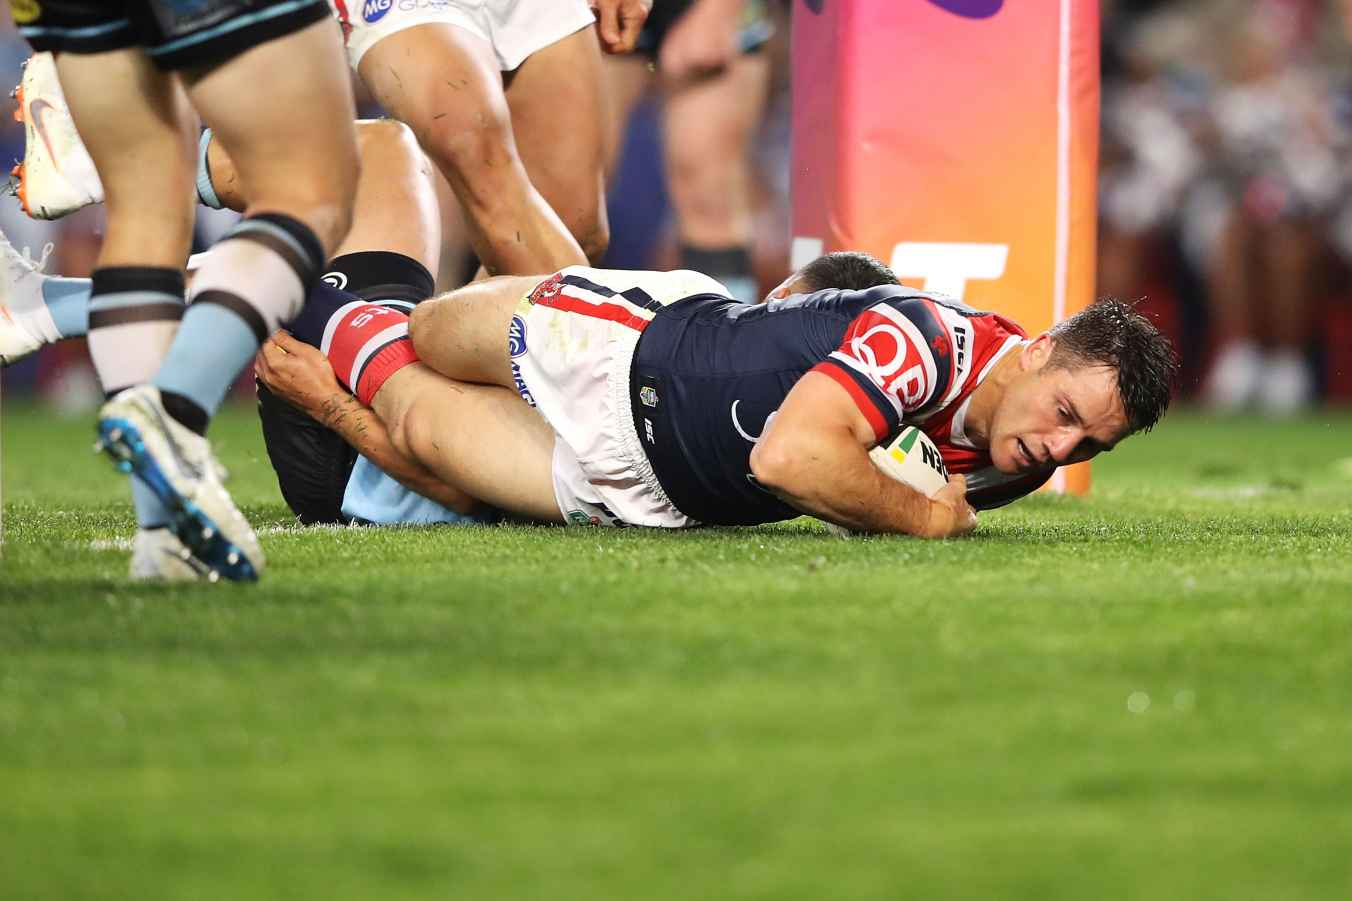 Cooper Cronk of the Roosters scores try during the NRL Qualifying Final match between the Sydney Roosters and the Cronulla Sharks at Allianz Stadium on September 8, 2018 in Sydney, Australia.